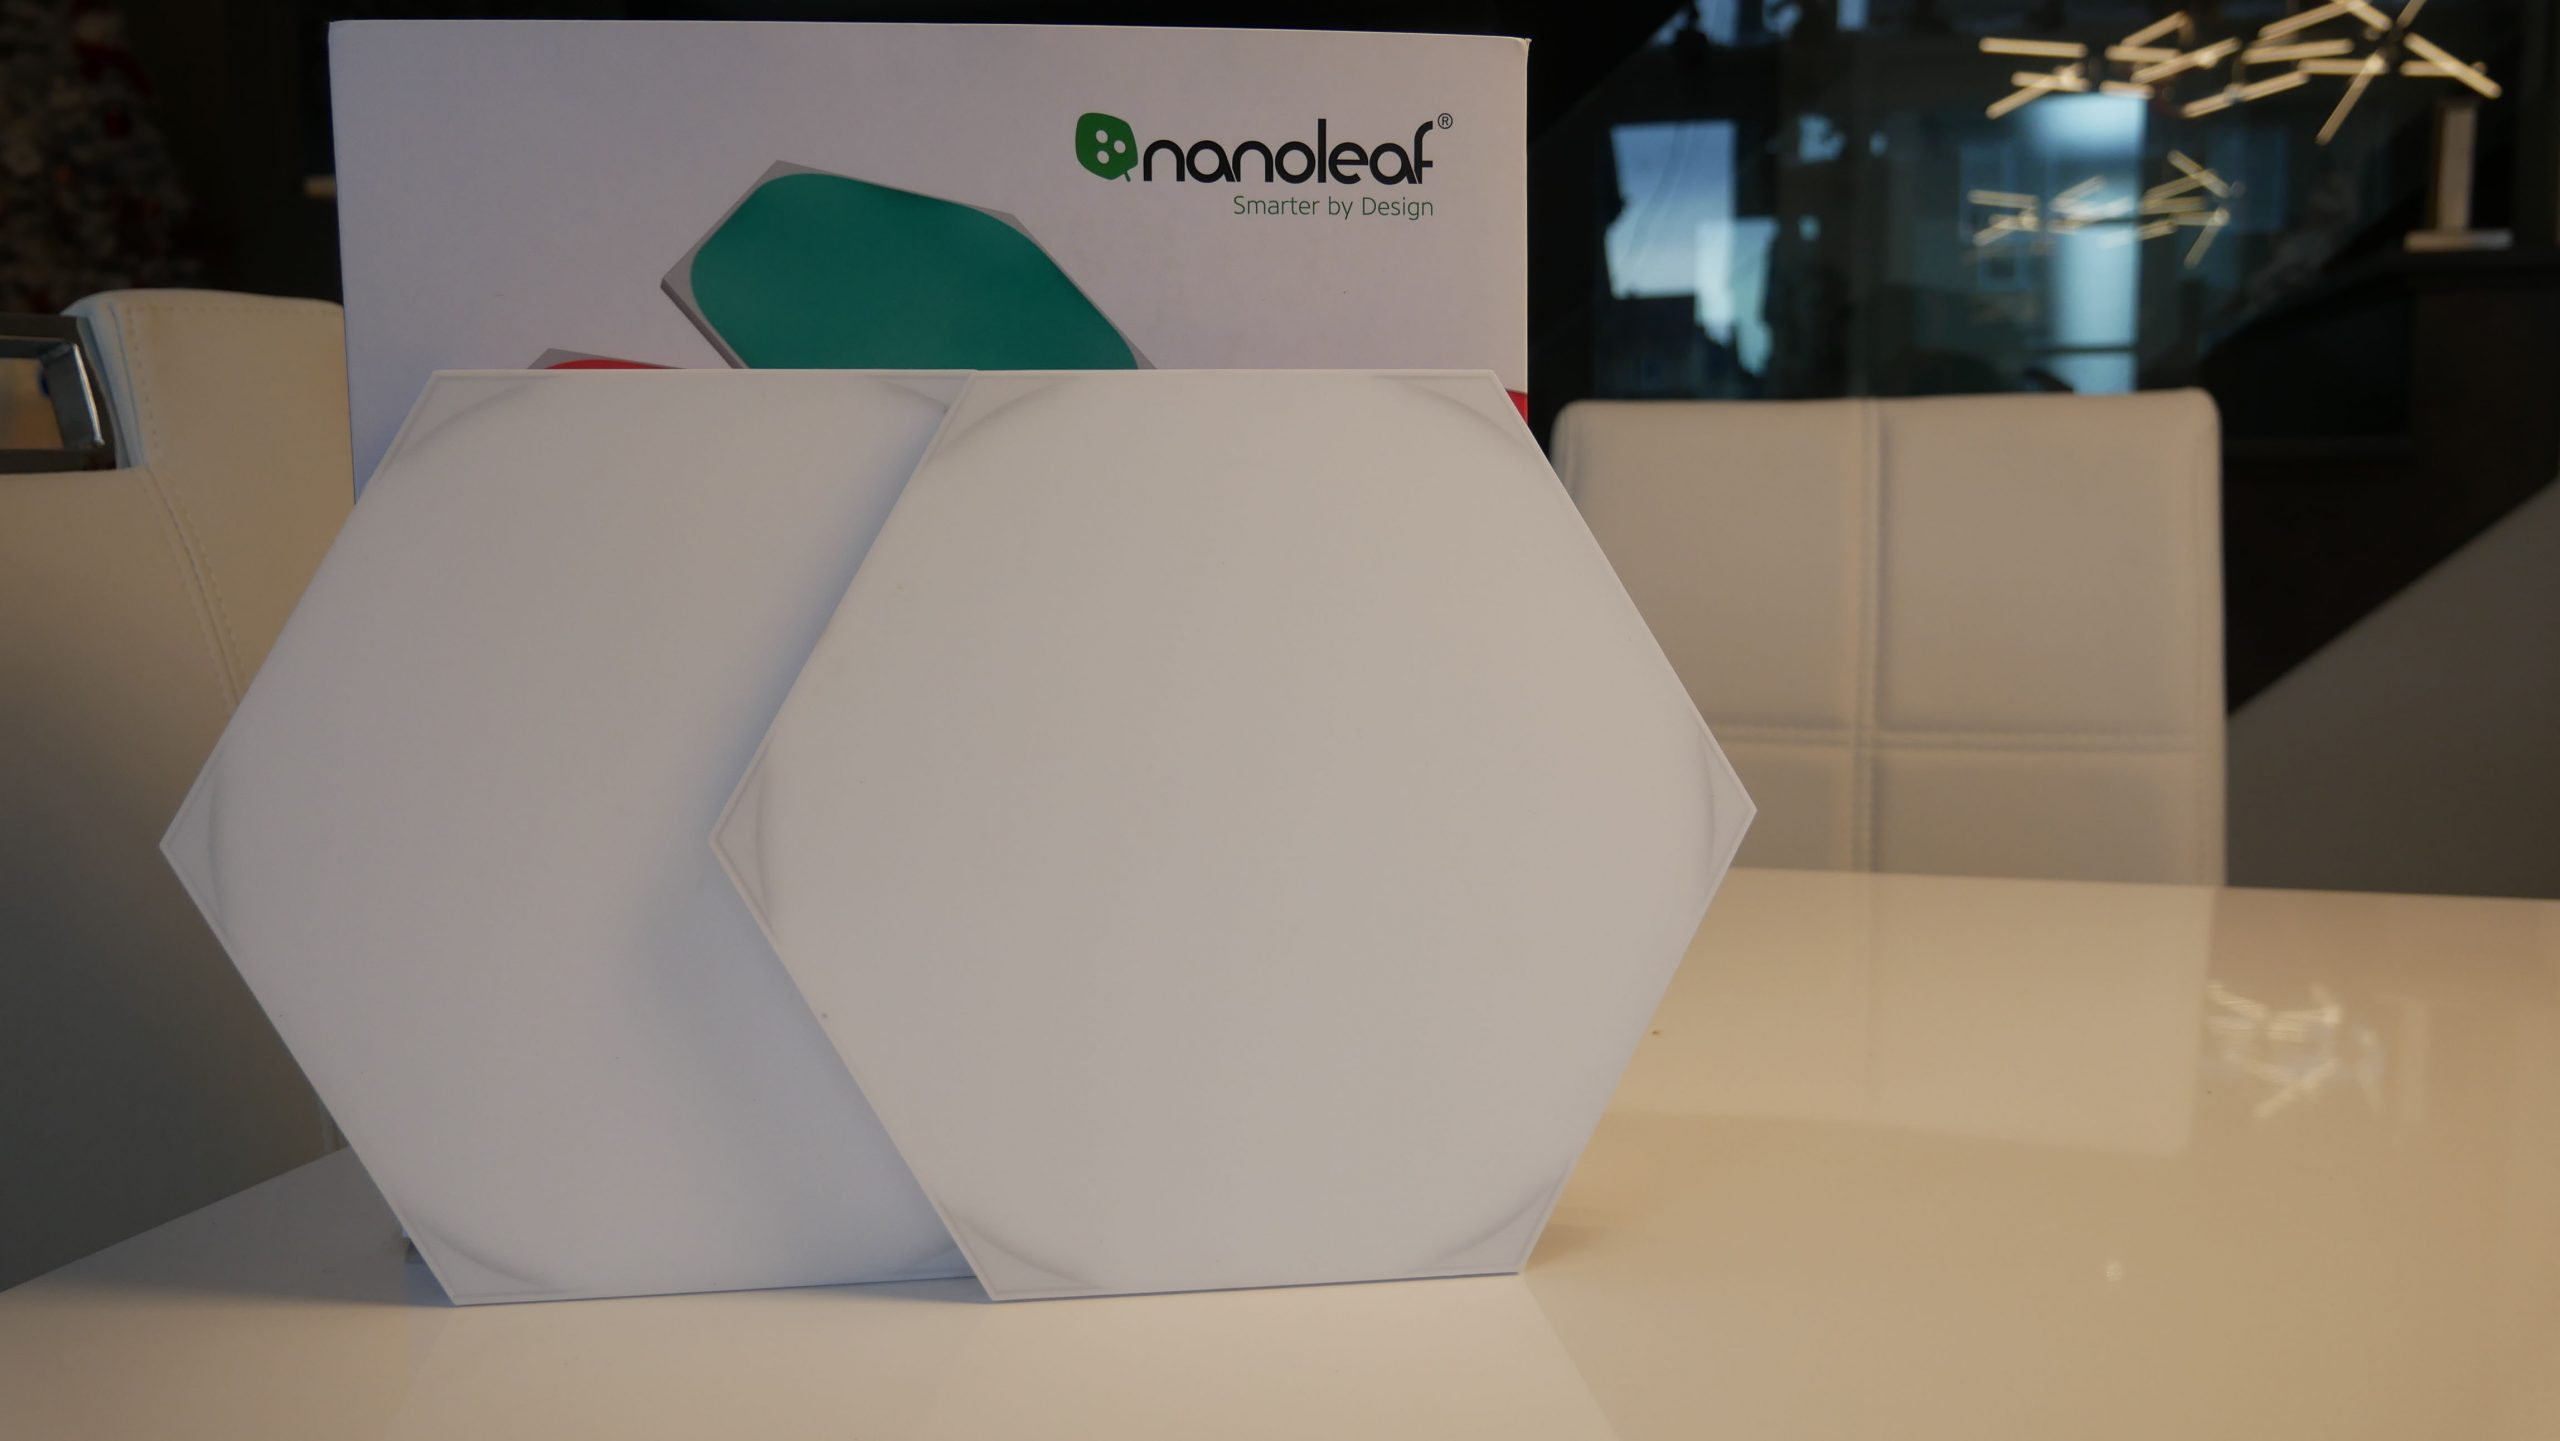 Image of Nanoleaf box with tile